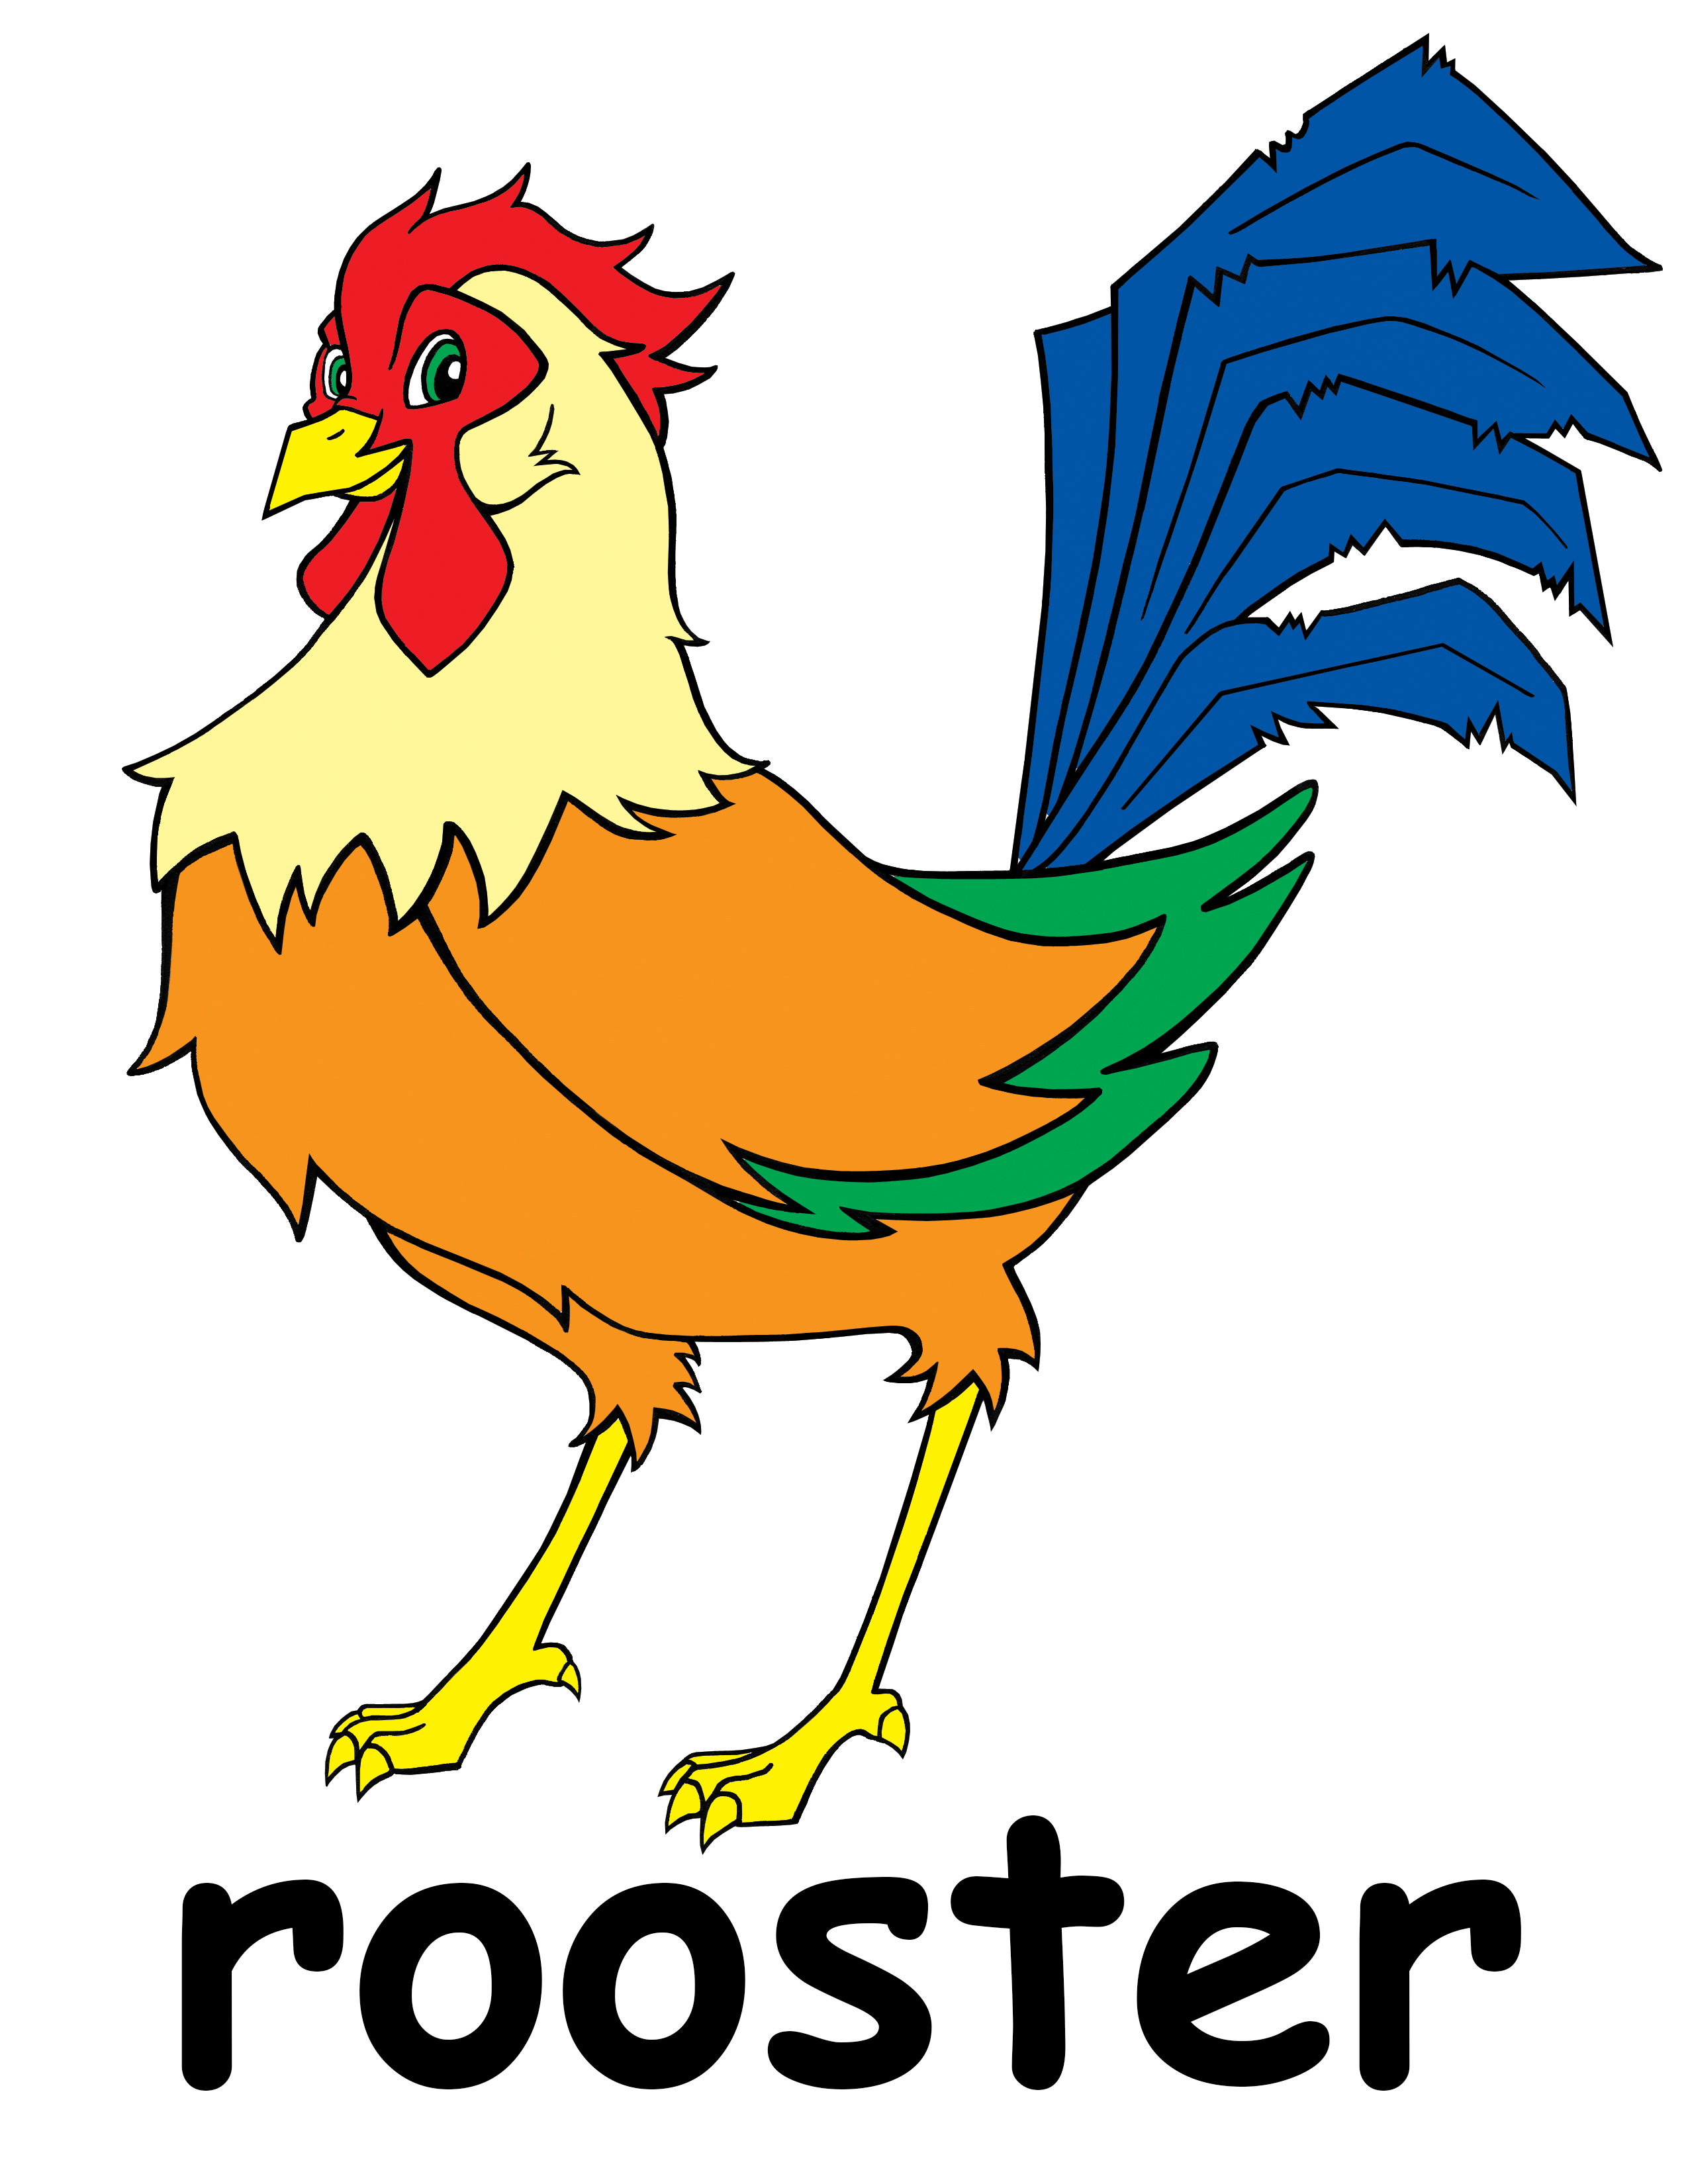 clipart rooster - photo #19